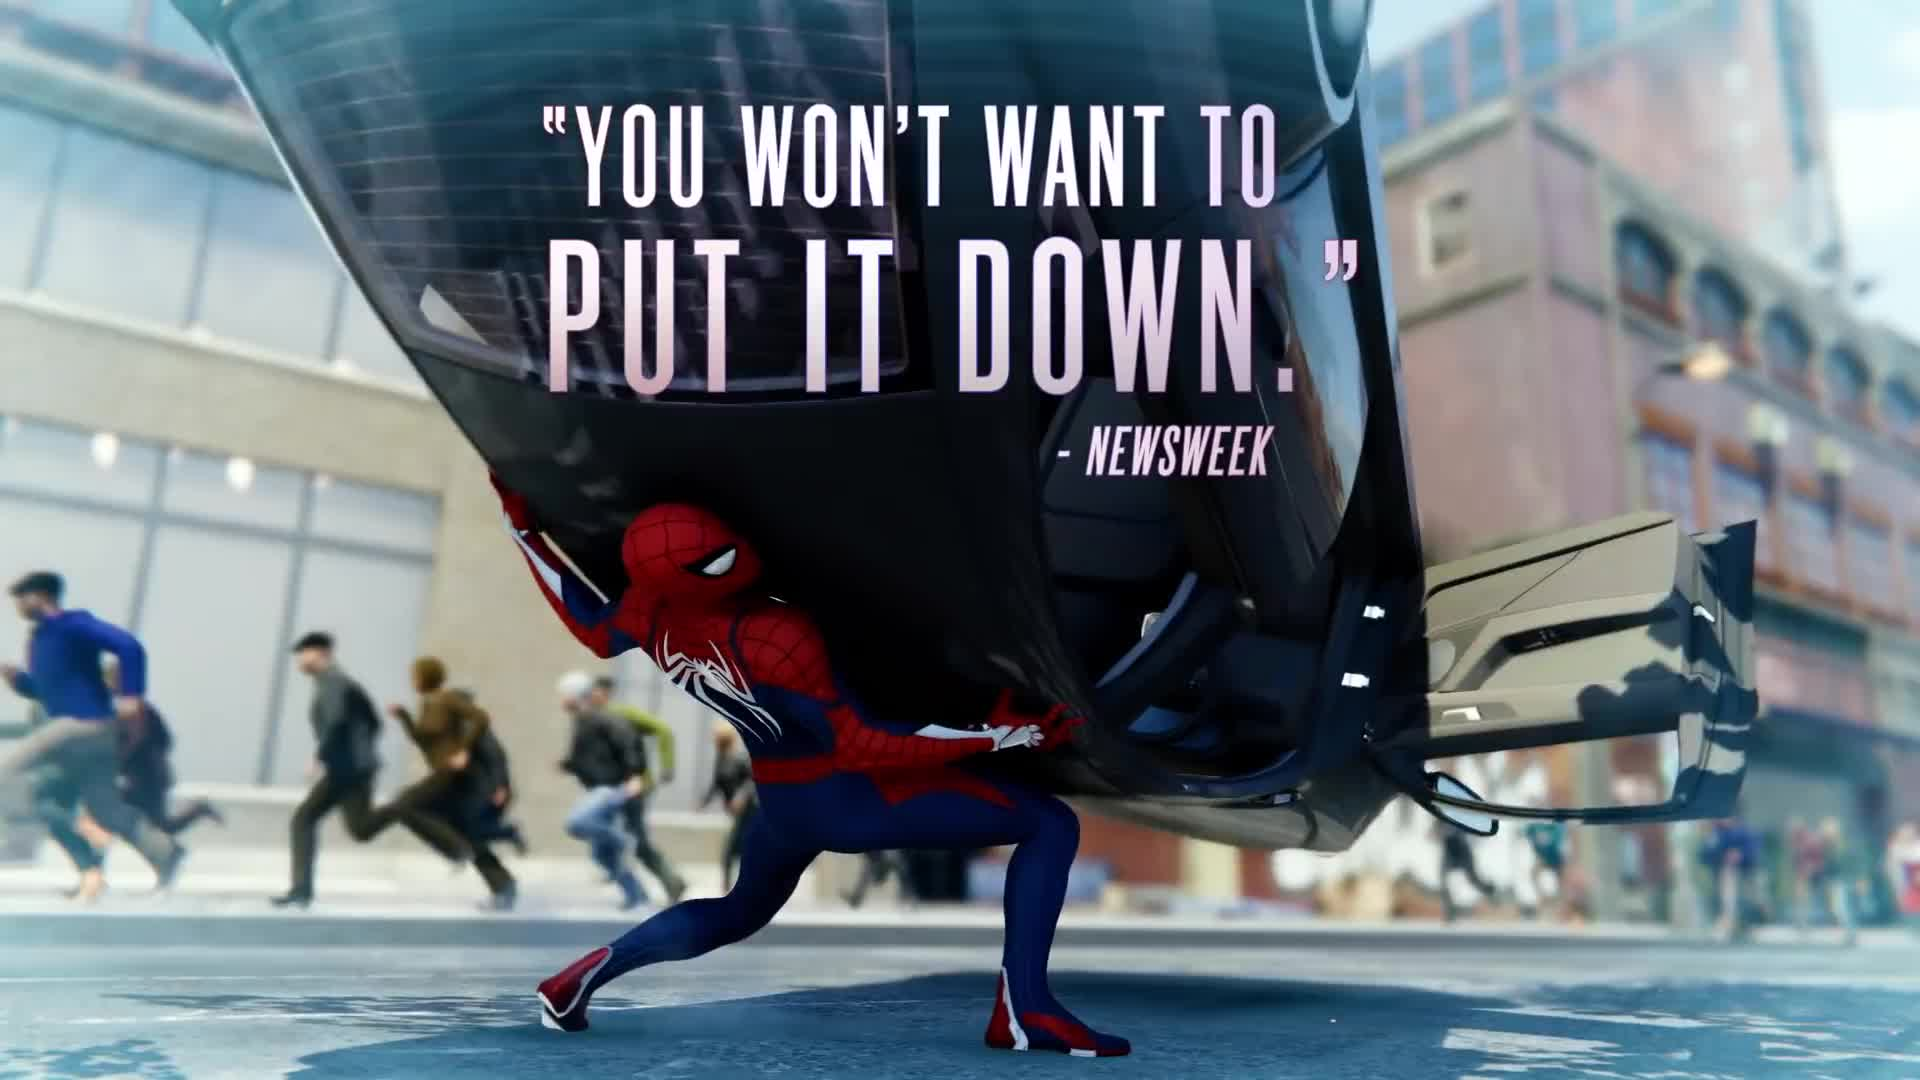 Marvel's Spider-Man: Game of the Year Edition - Accolades Trailer [HD] screen capture